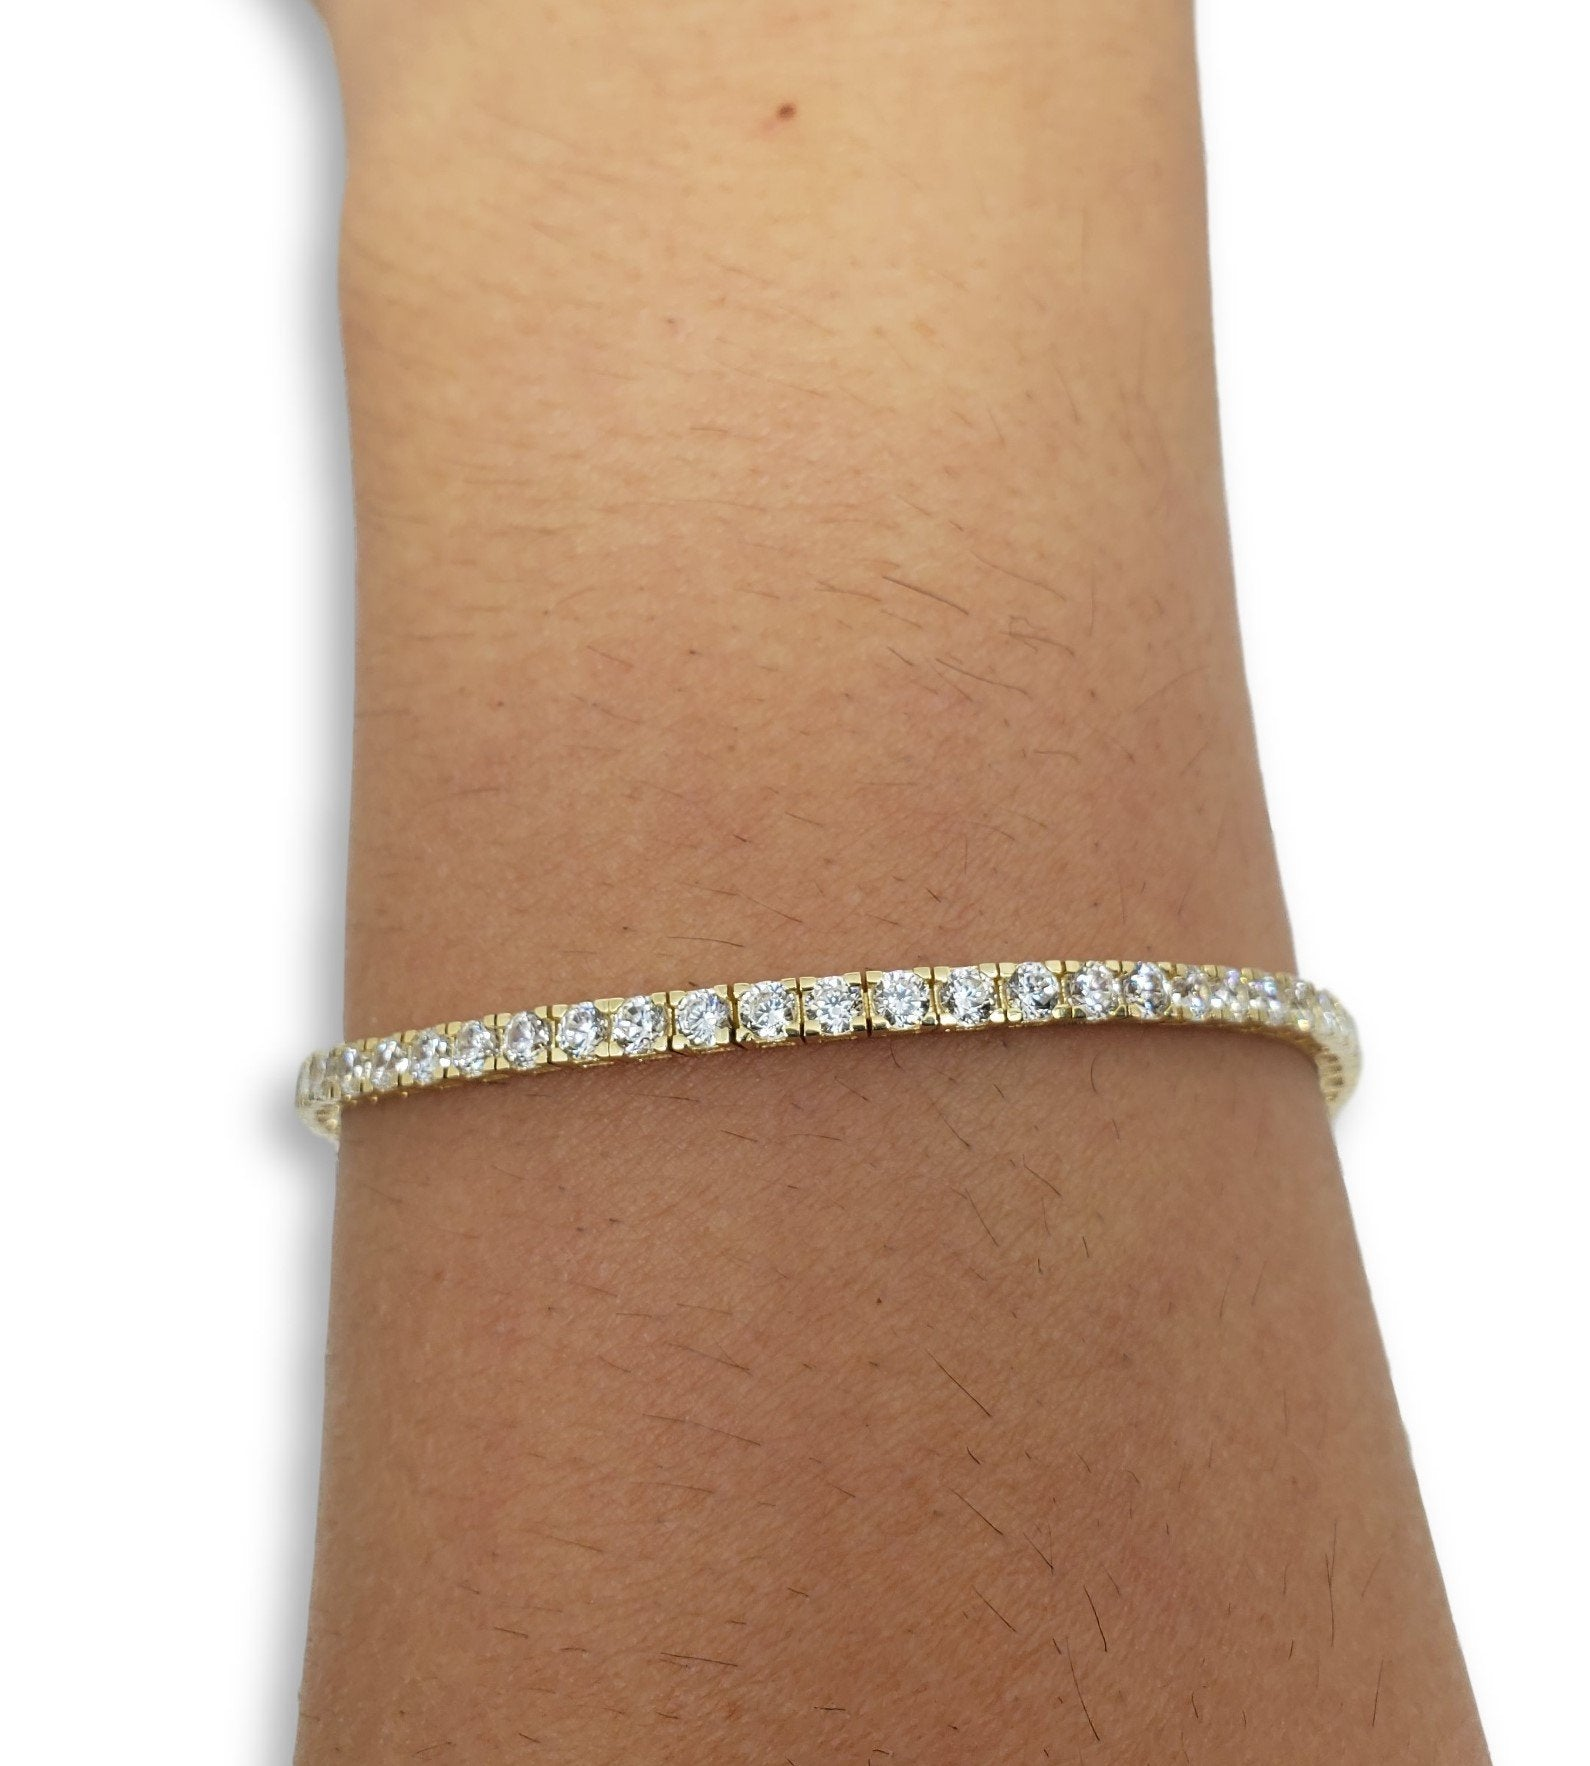 Bracelet11 en or 10K / Bangle11 in 10K gold - orquebec